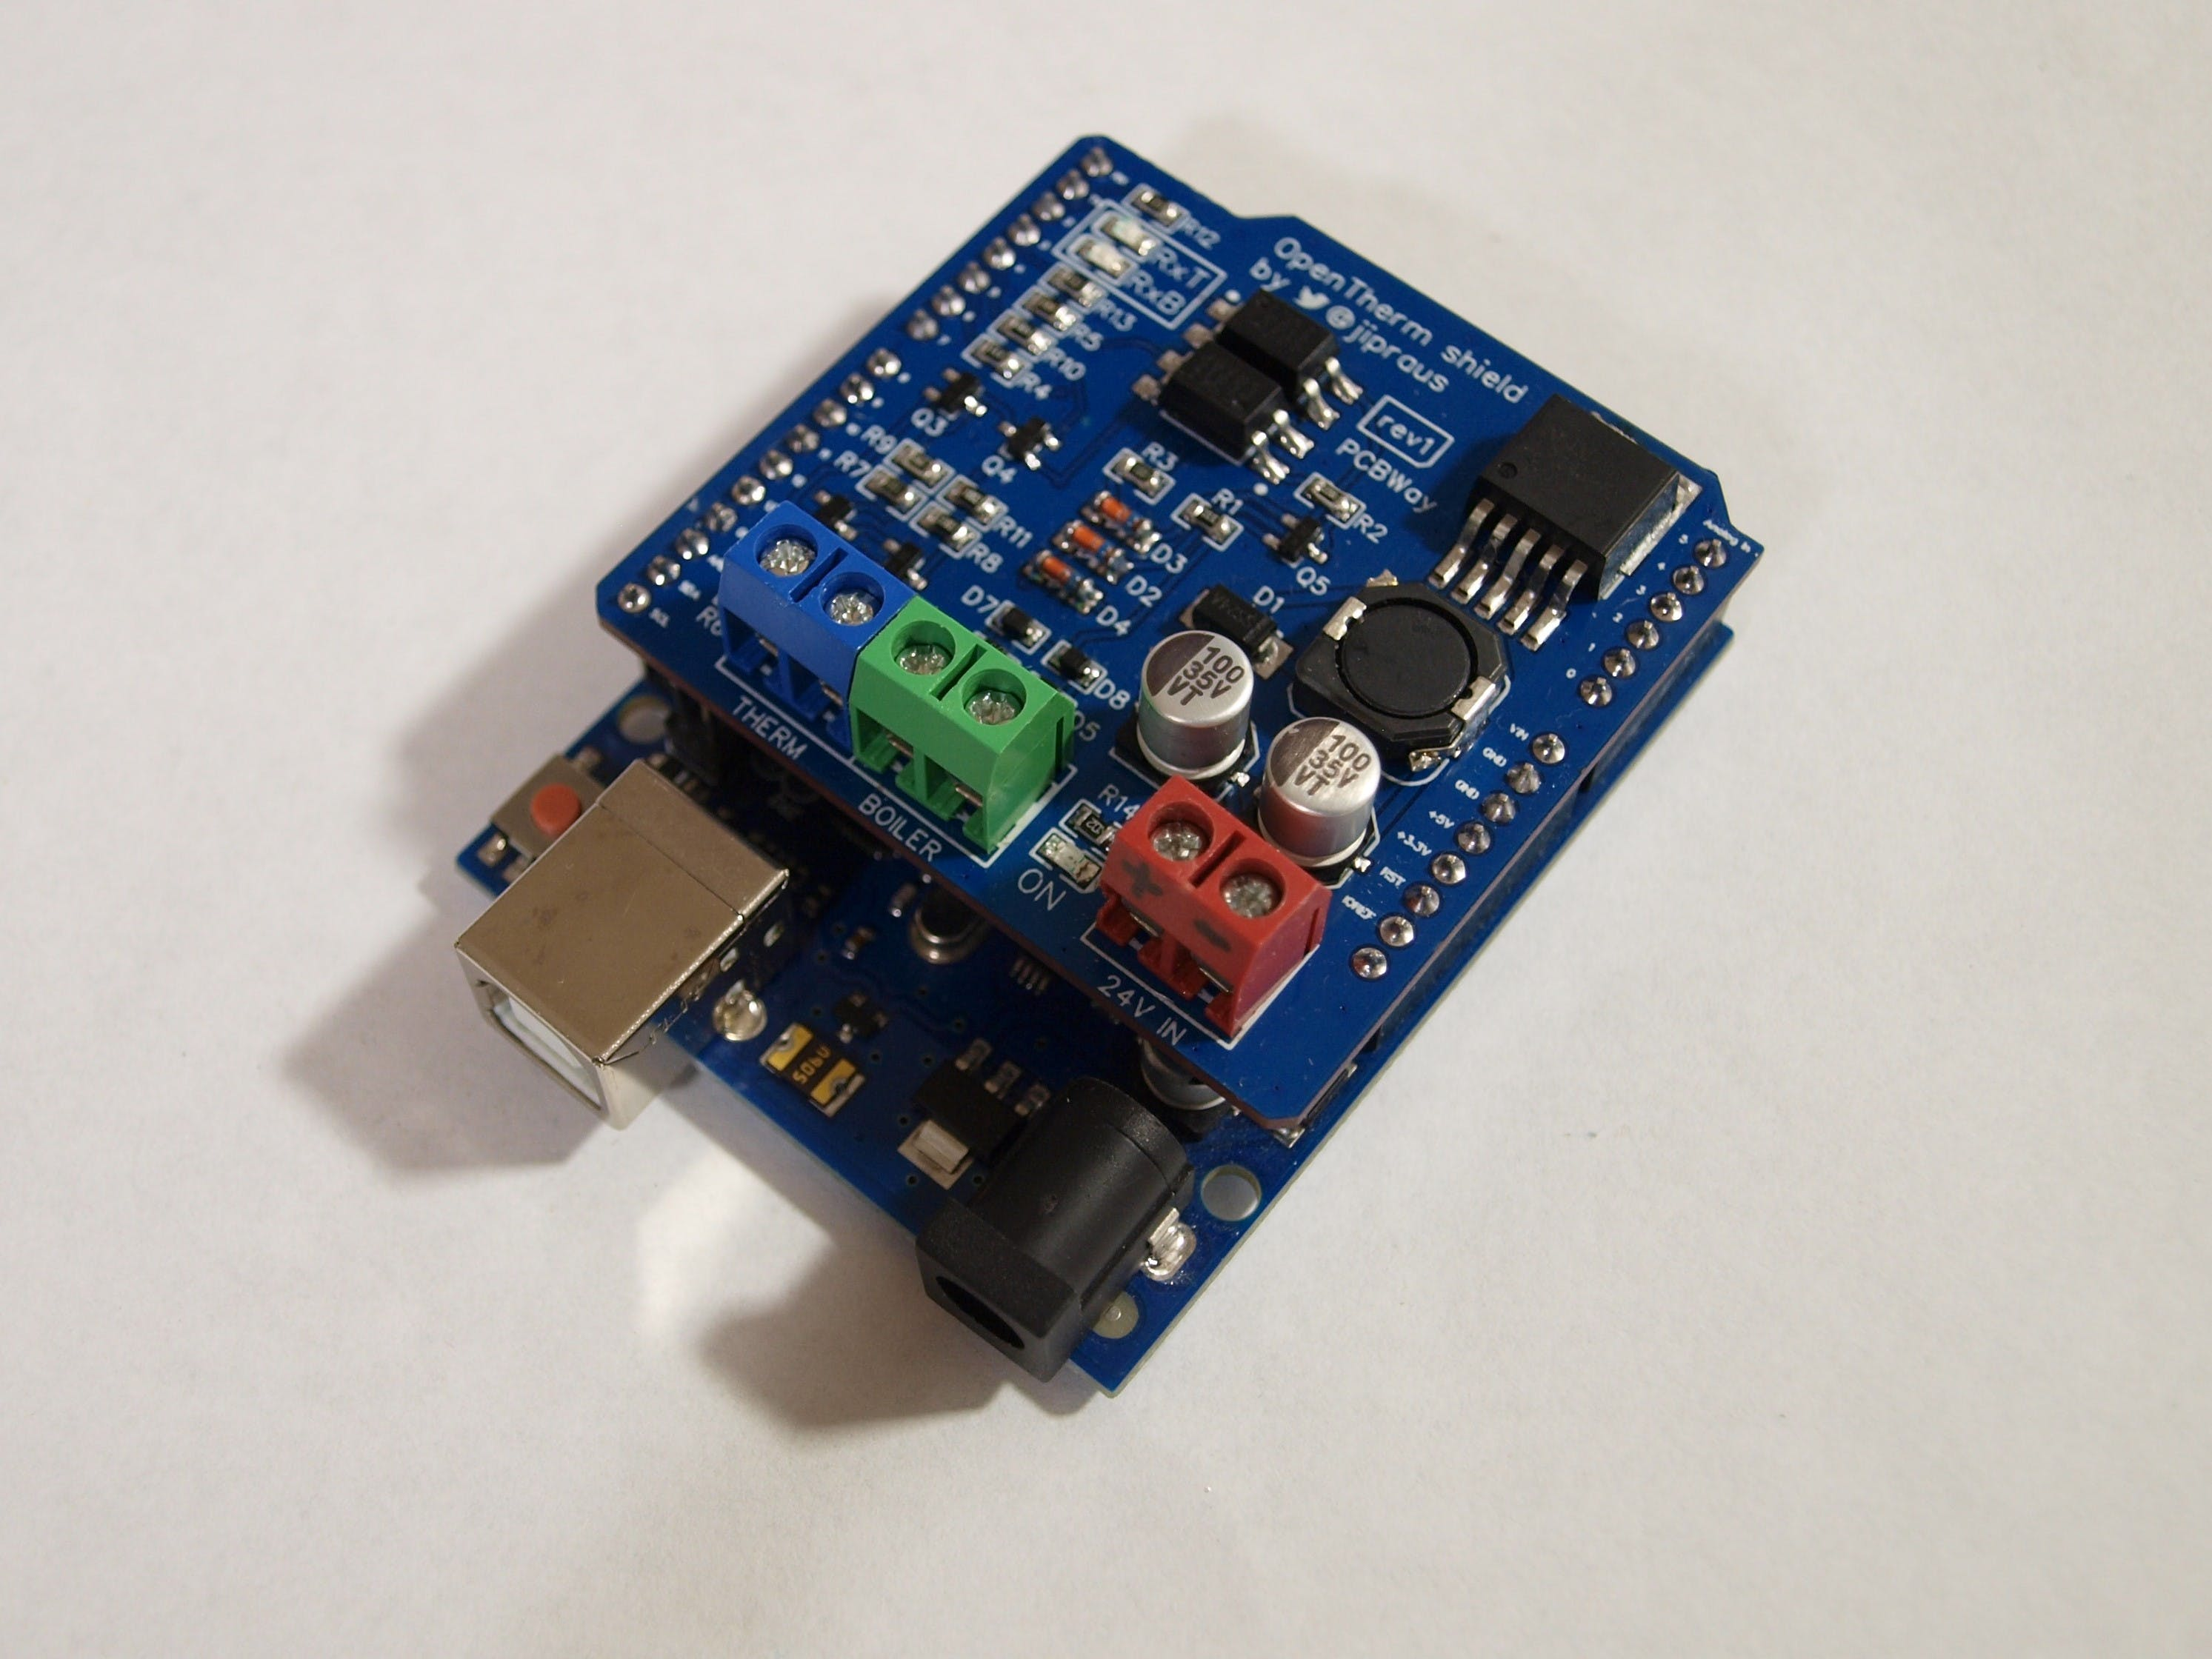 OpenTherm shield on top of Arduino UNO